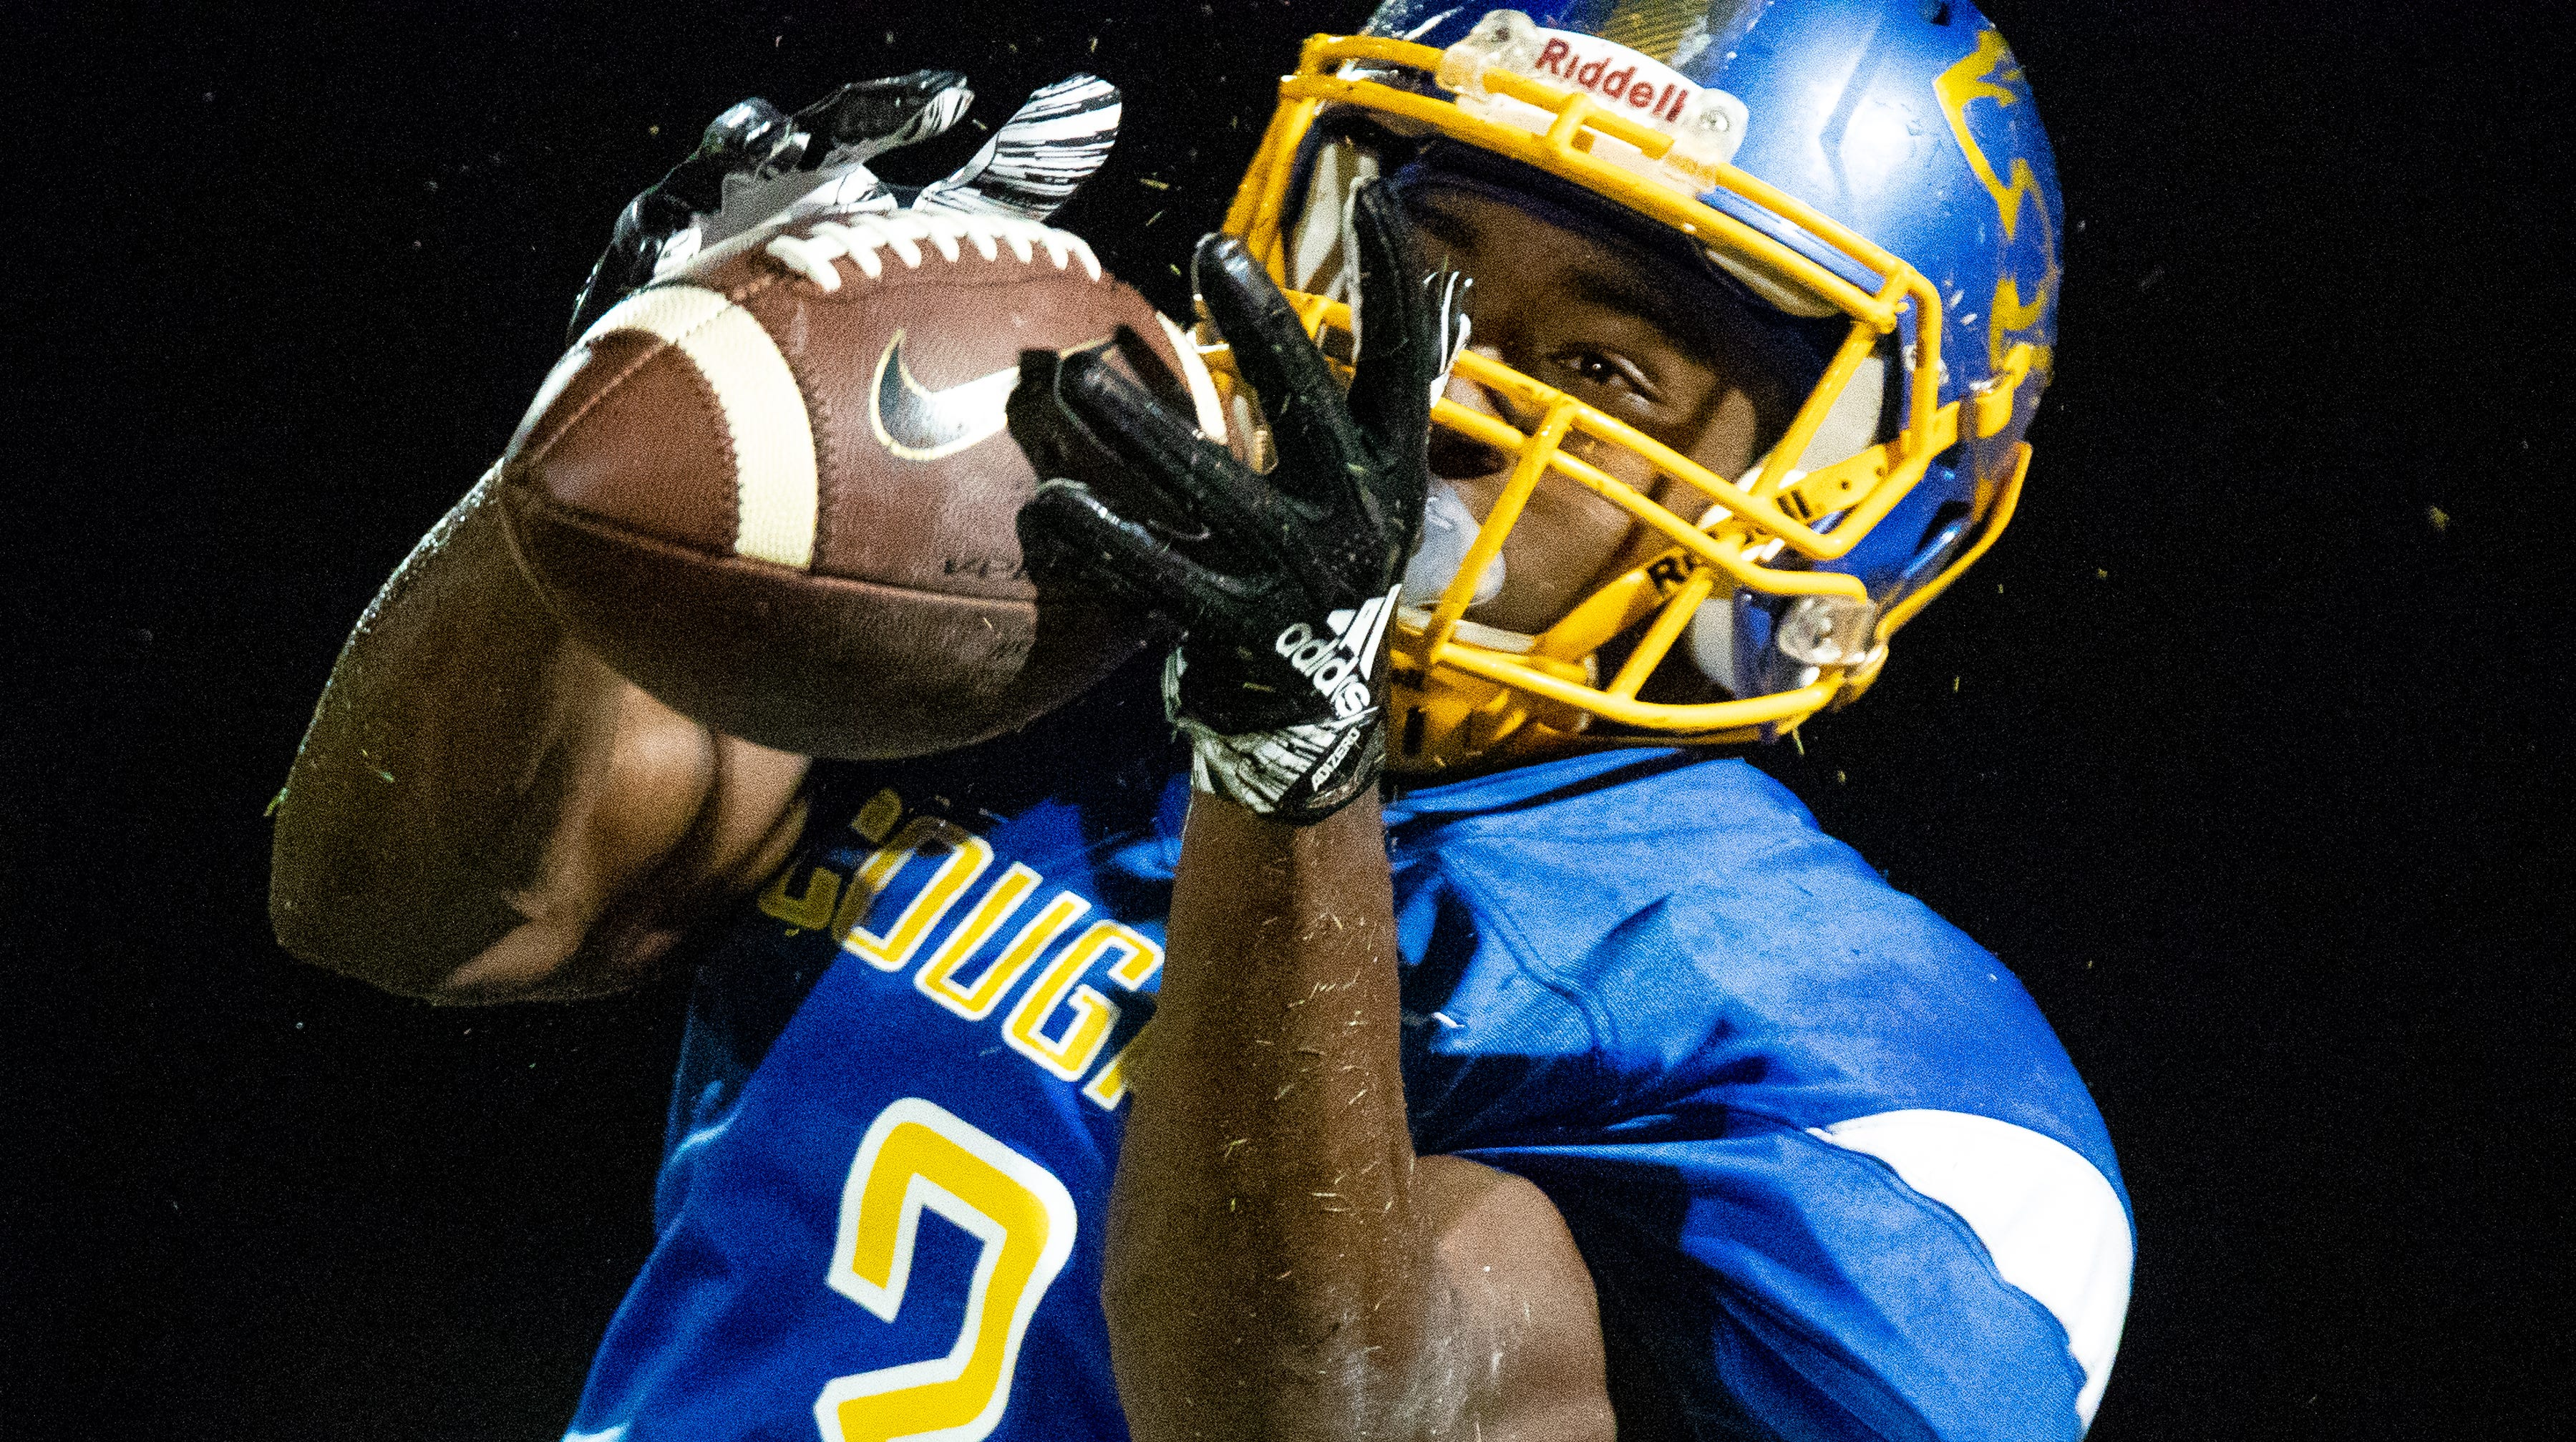 T.J. Jenkins (3) of Clarksville Academy catches the ball during the first half at Clarksville Academy Sports Complex on Oct. 12, 2018, in Clarksville.